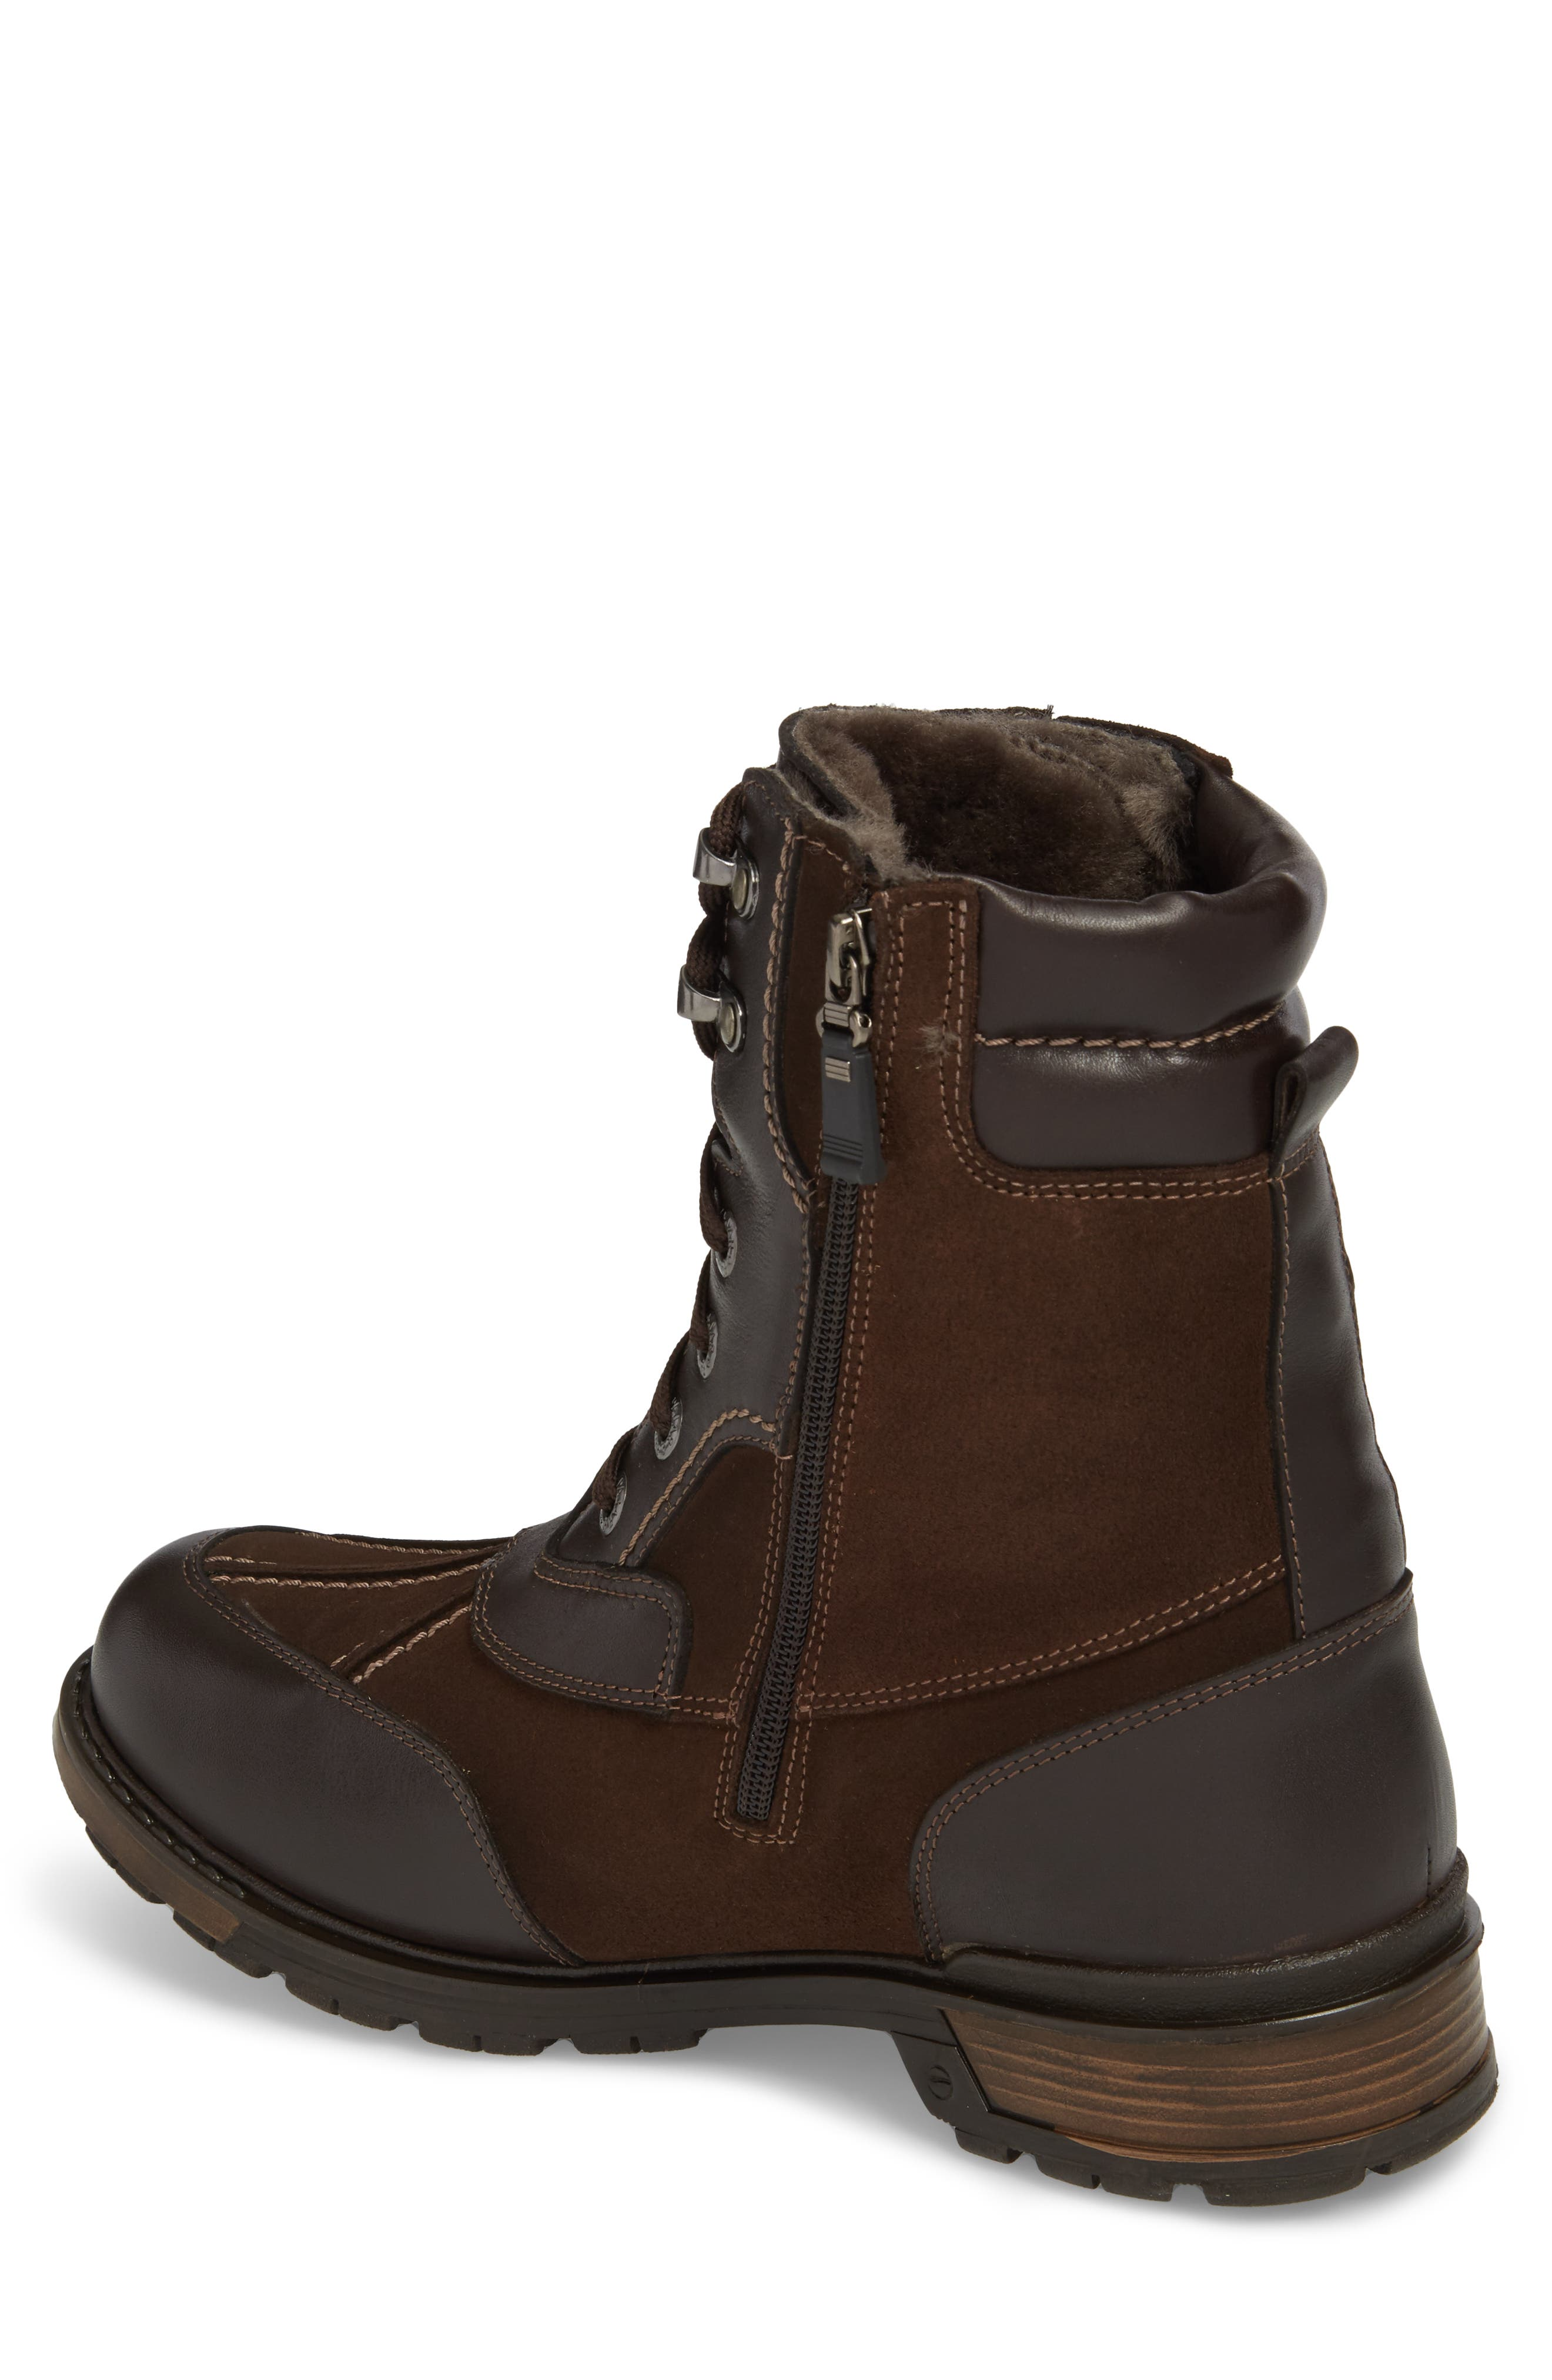 'Carrefour' Snow Boot,                             Alternate thumbnail 2, color,                             Dark Brown Leather